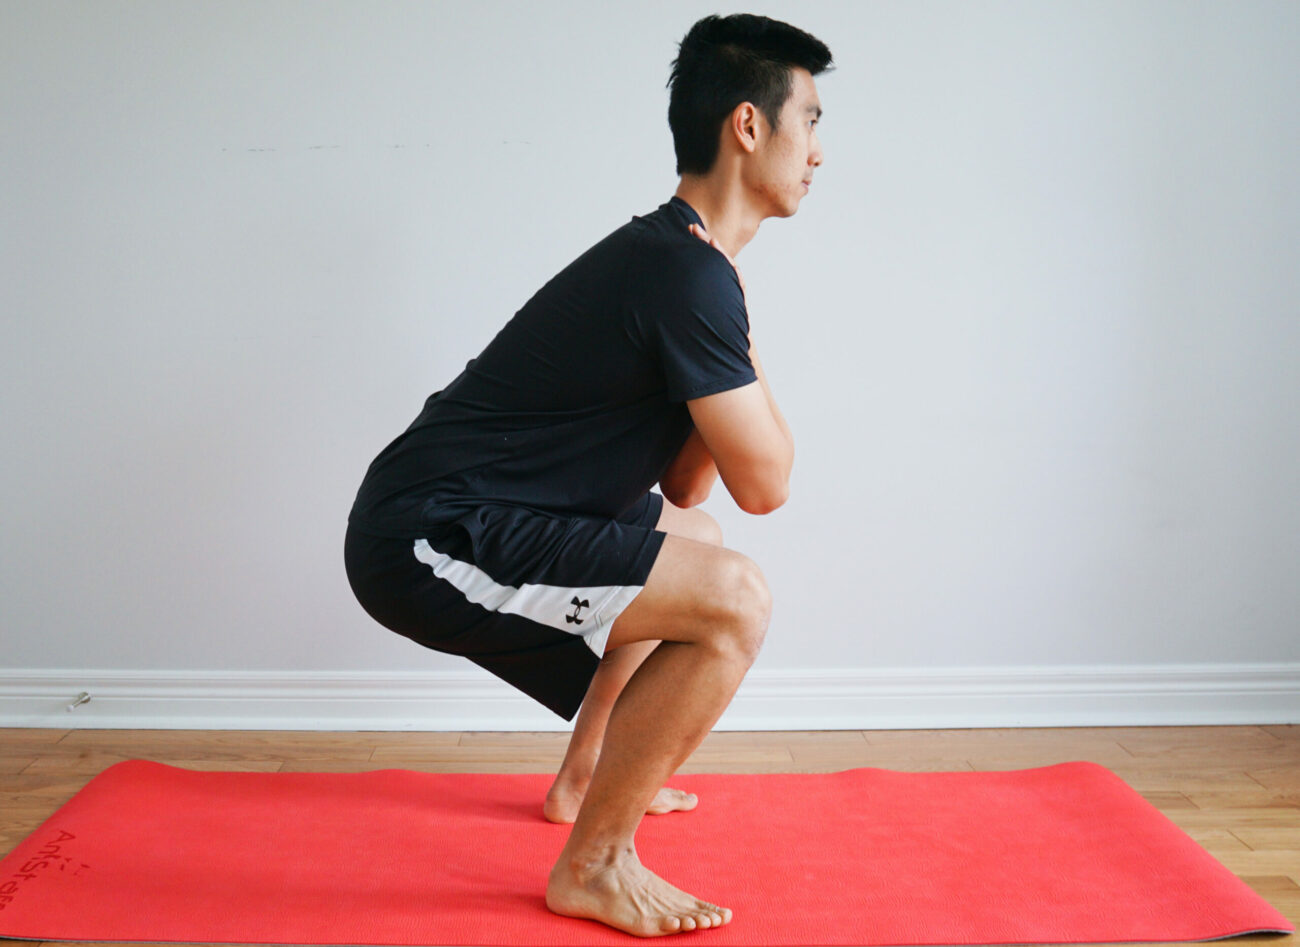 man performing squats